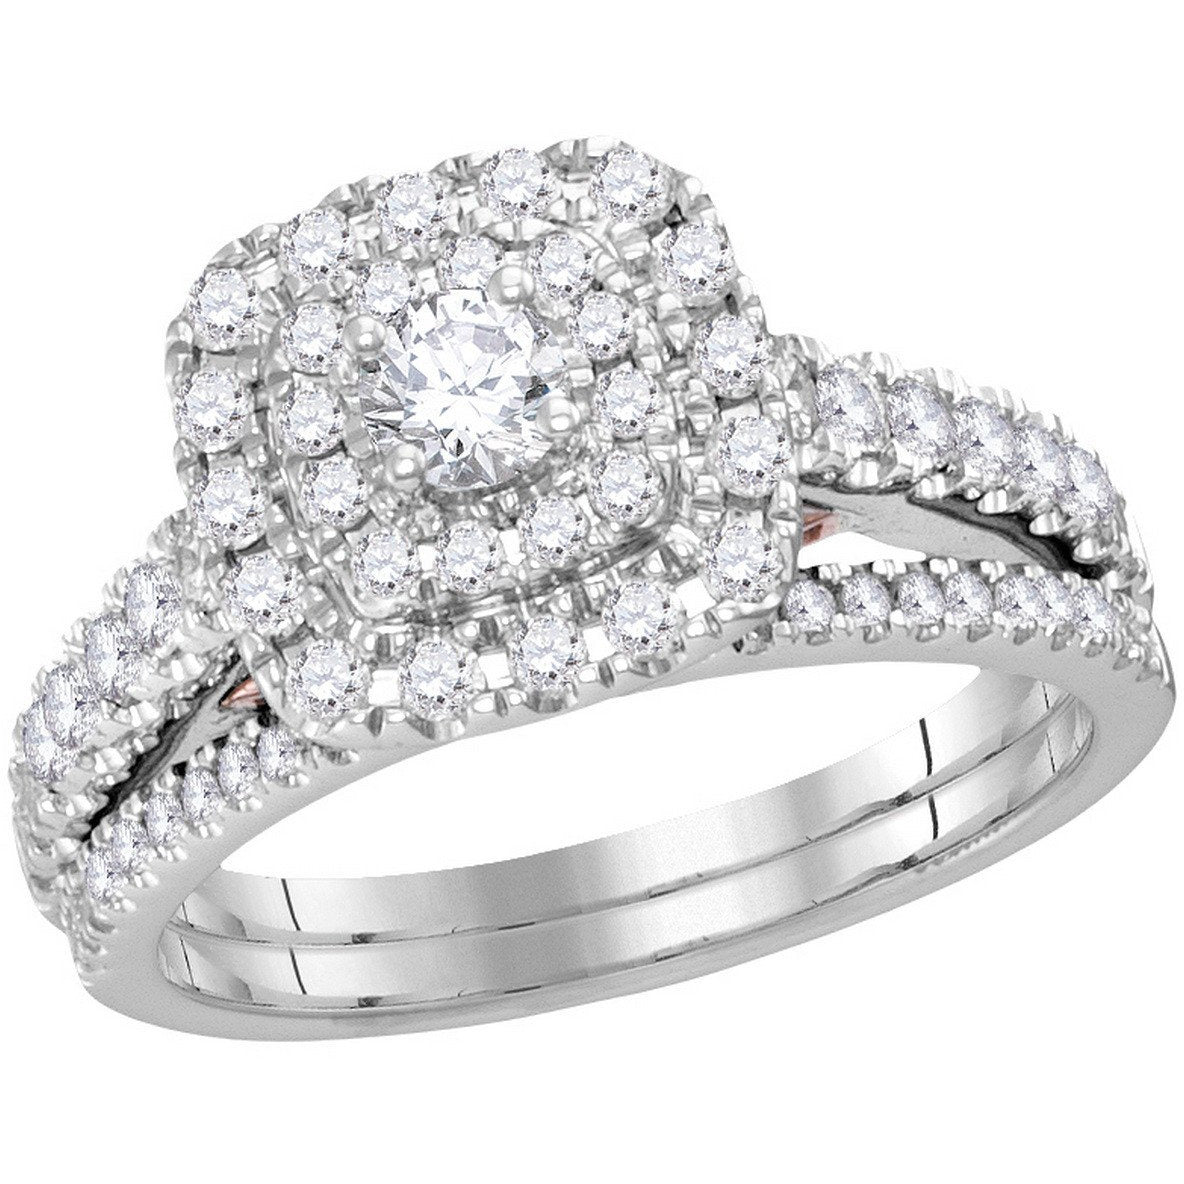 14kt White Gold Womens Round Diamond Double Square Halo Bridal Wedding Engagement Ring Band Set 1.00 Cttw 114800 - shirin-diamonds